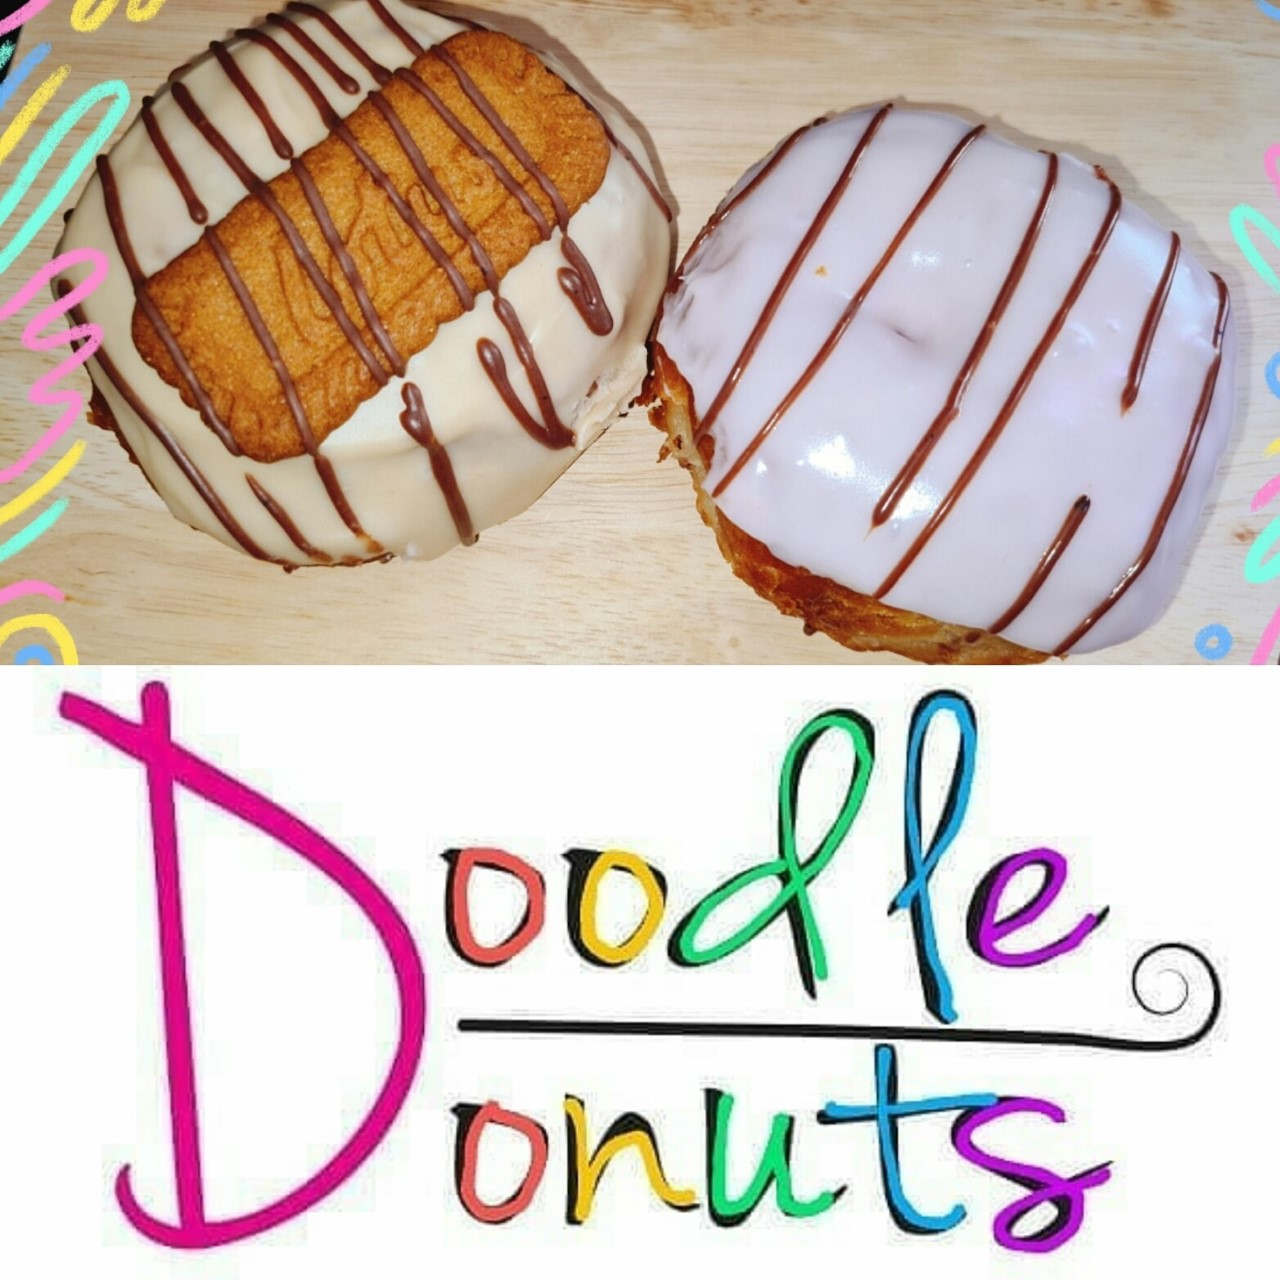 Doodle Donuts - Box of 2 Fried Donuts PRE-ORDER FOR WEDS 20 & THURS 21 JAN